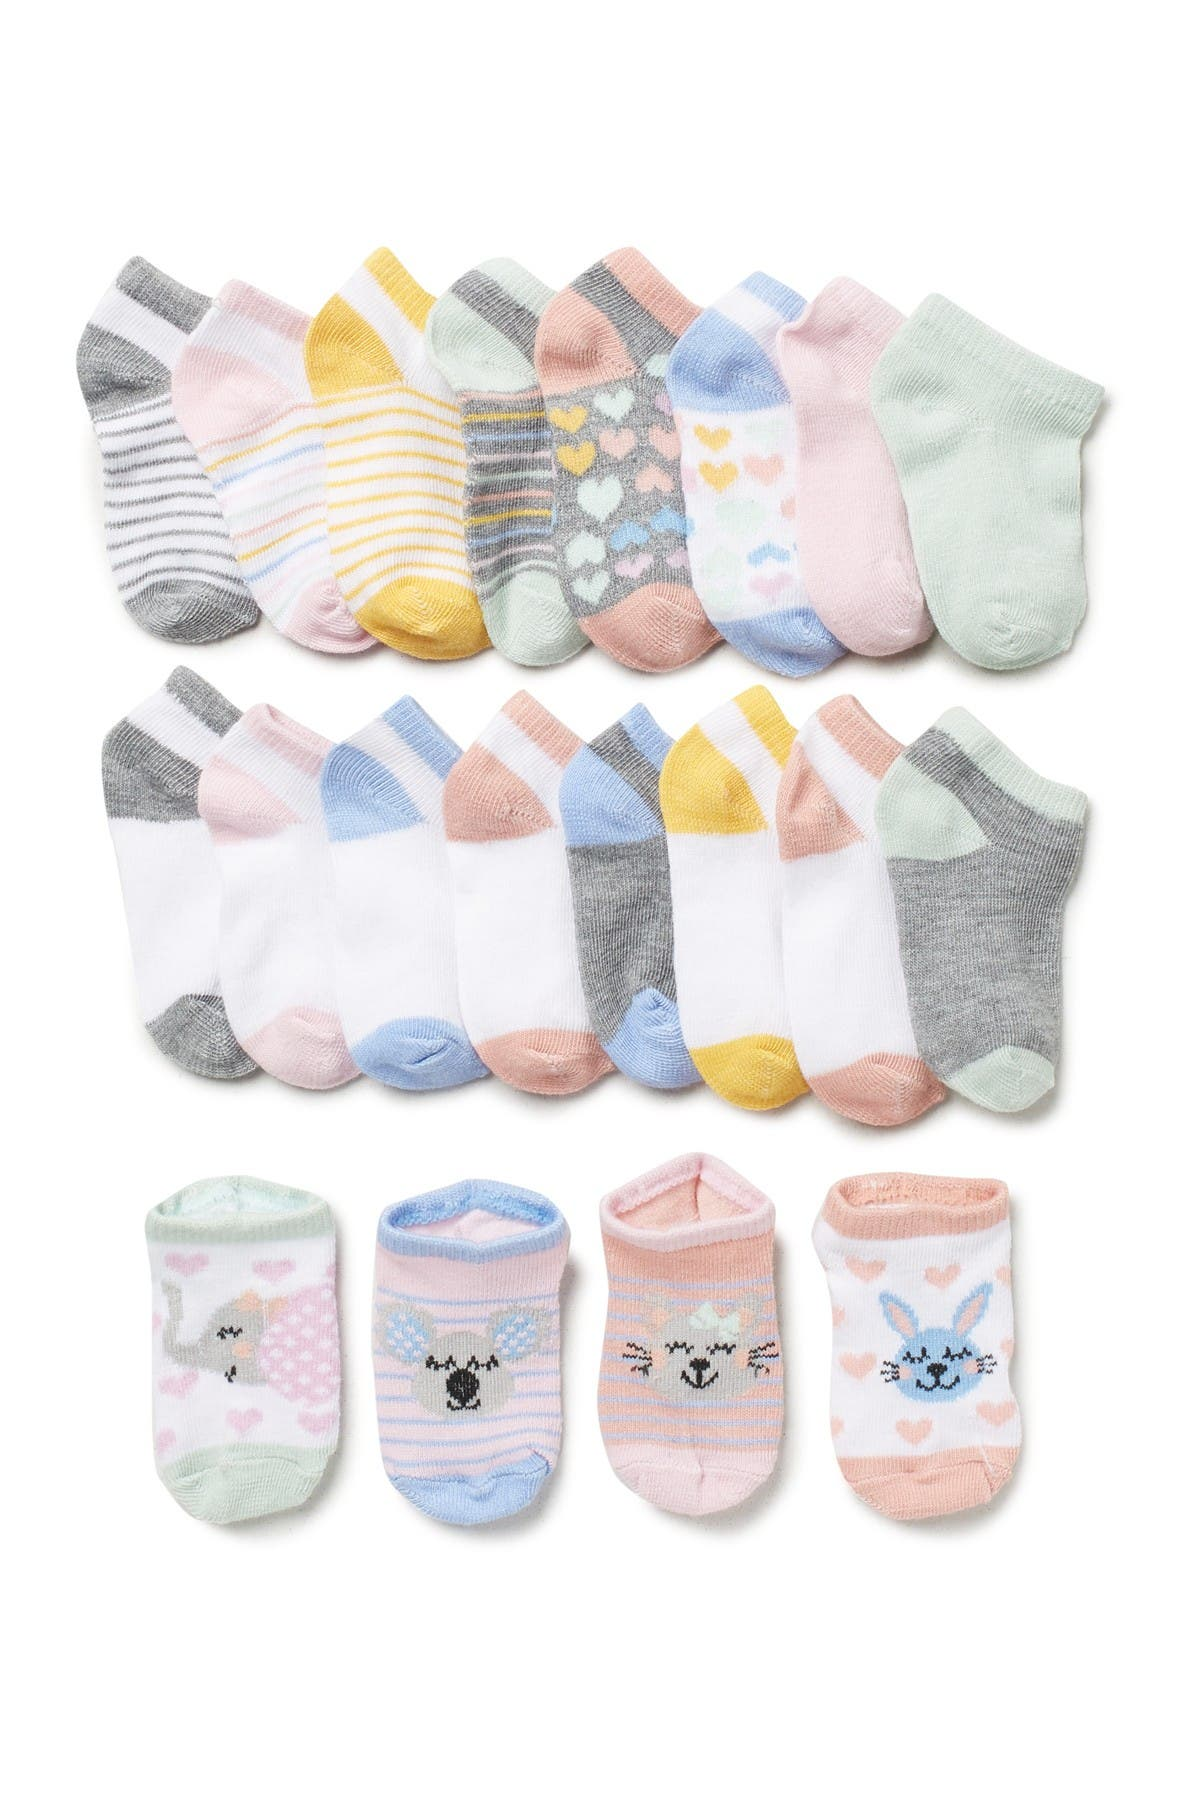 Image of CAPELLI OF NEW YORK Cute Critters Low Socks - Pack of 20